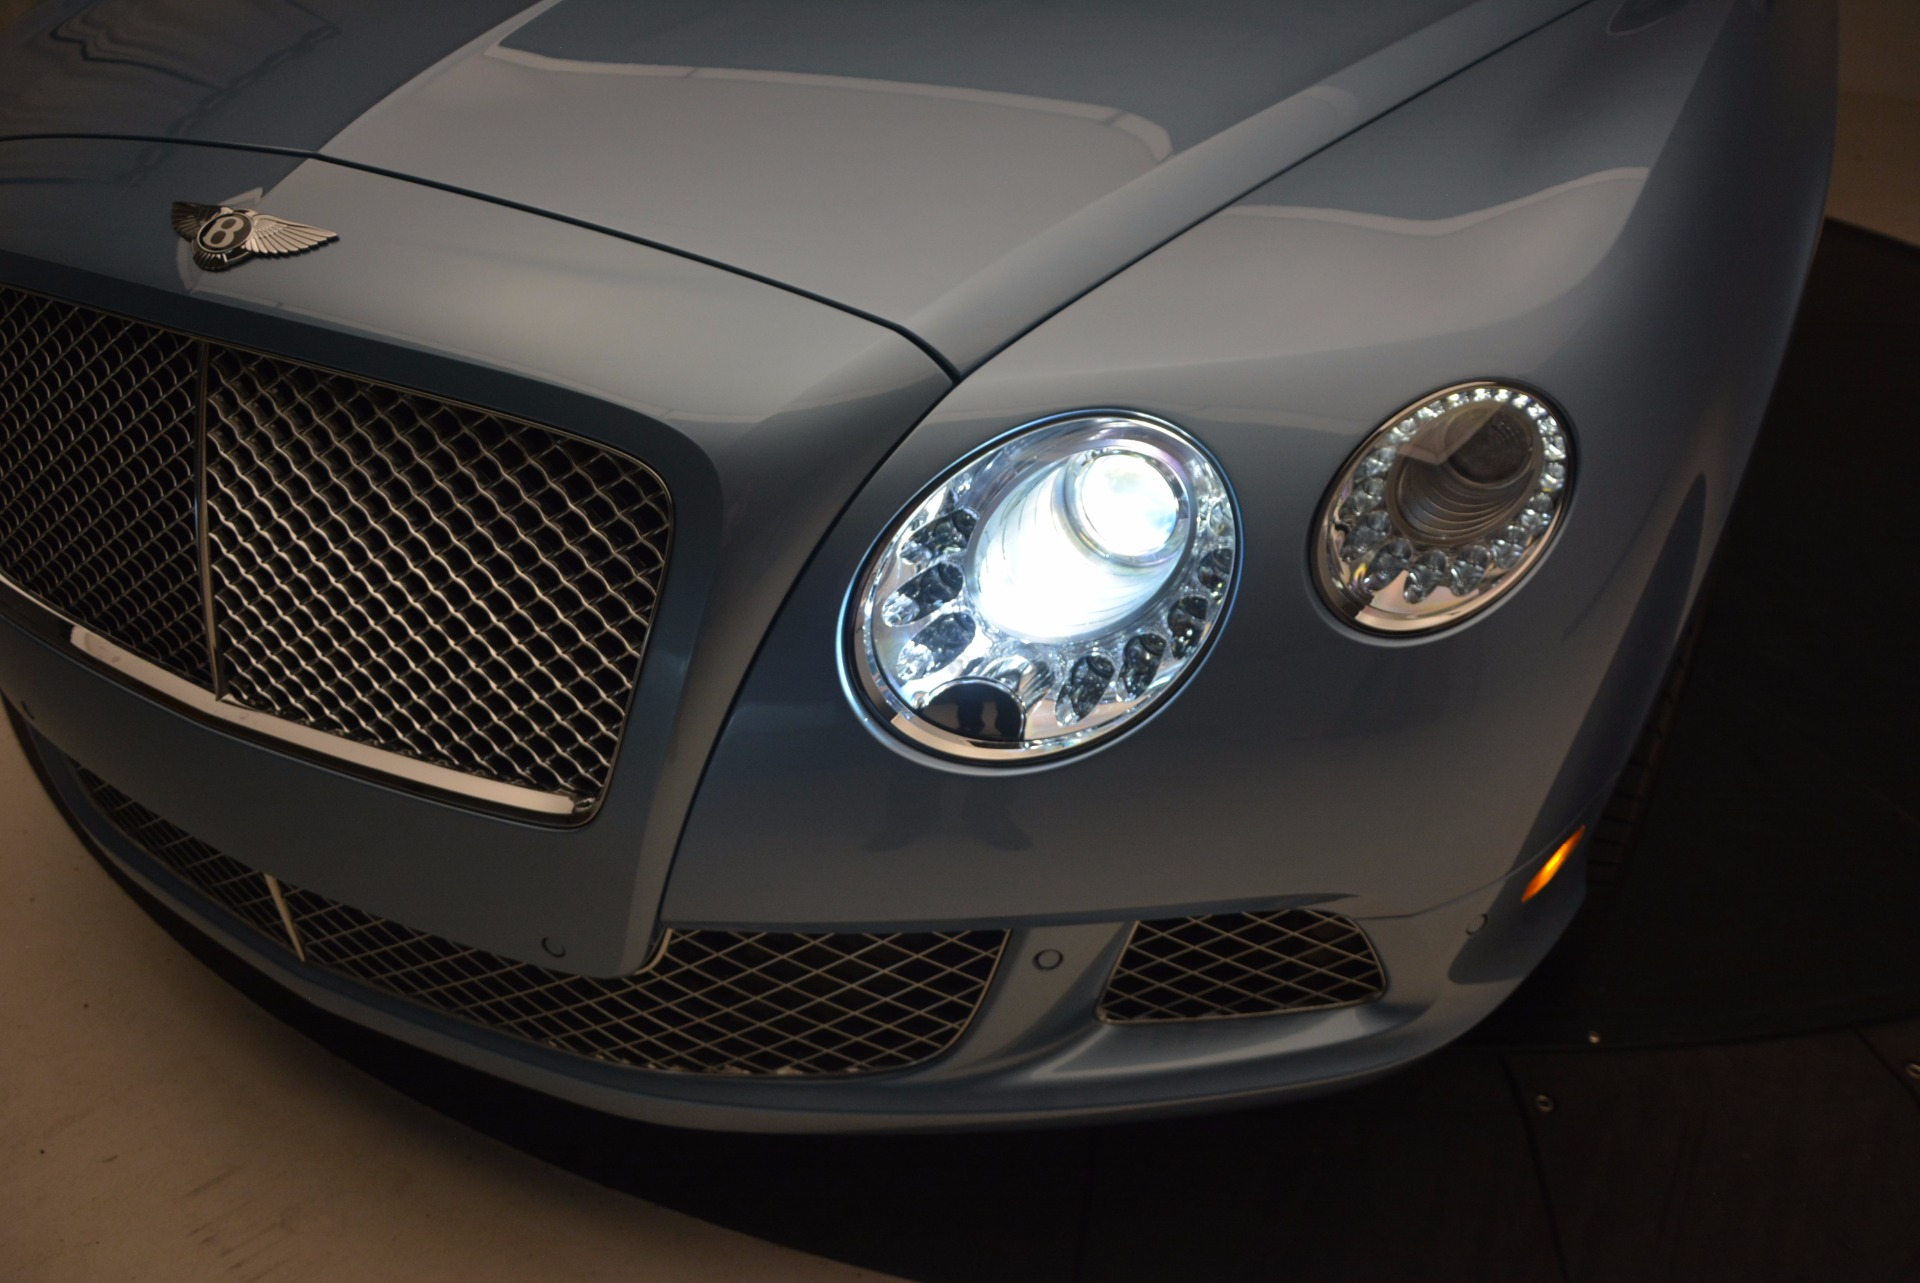 Used 2012 Bentley Continental GTC W12 For Sale In Westport, CT 1475_p27